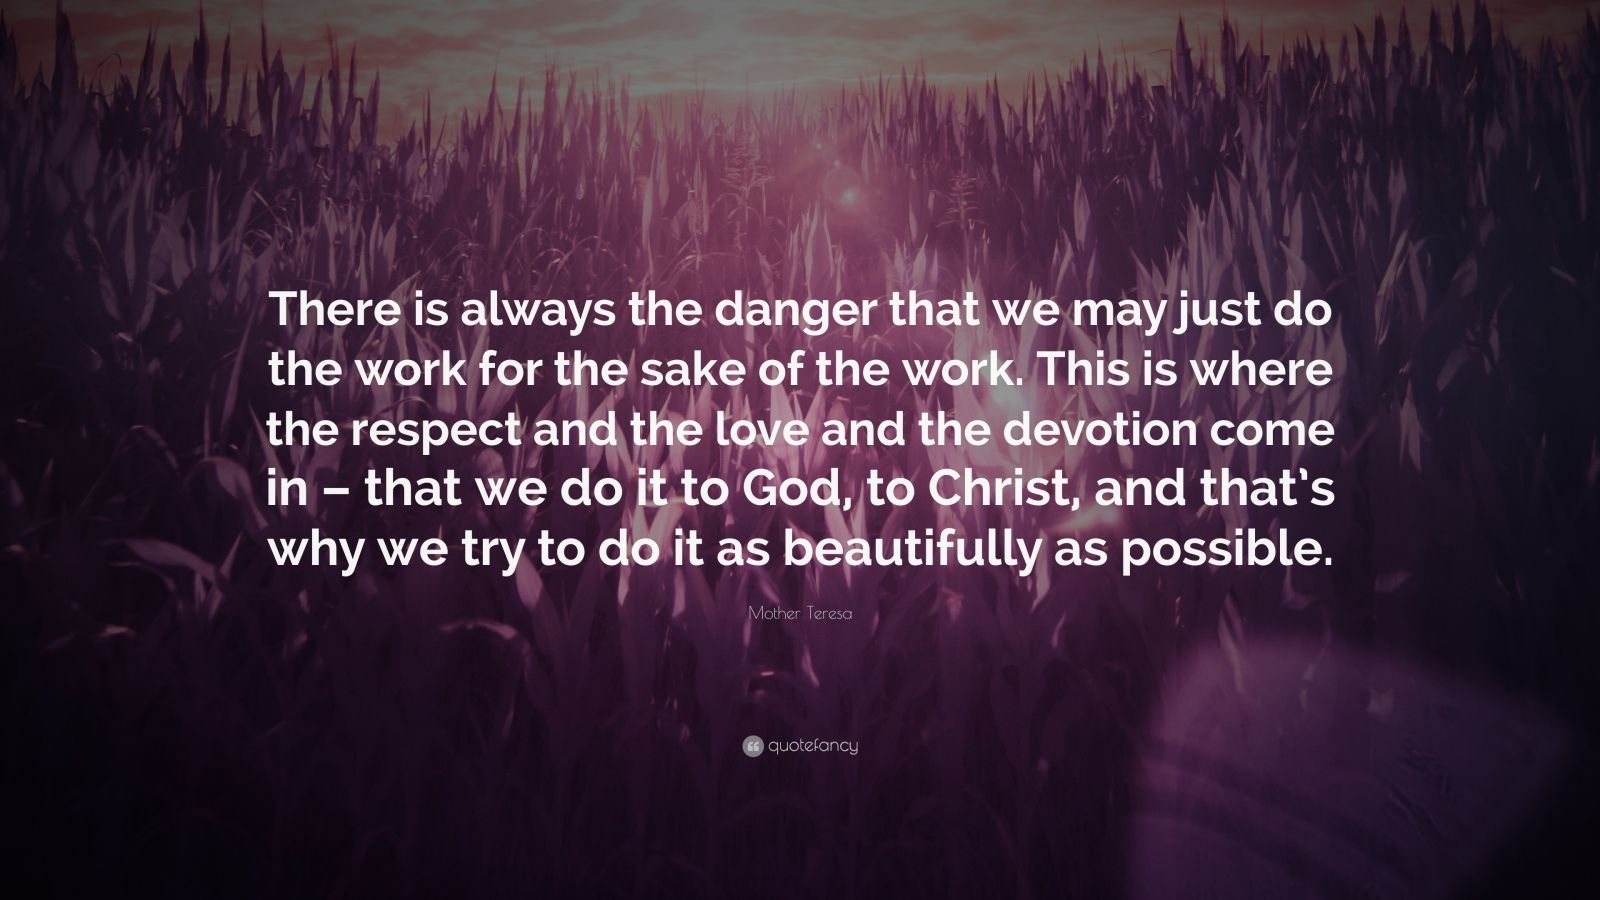 """Mother Teresa Quote: """"There is always the danger that we may just do the work for the sake of the work. This is where the respect and the love and the devotion come in – that we do it to God, to Christ, and that's why we try to do it as beautifully as possible."""""""